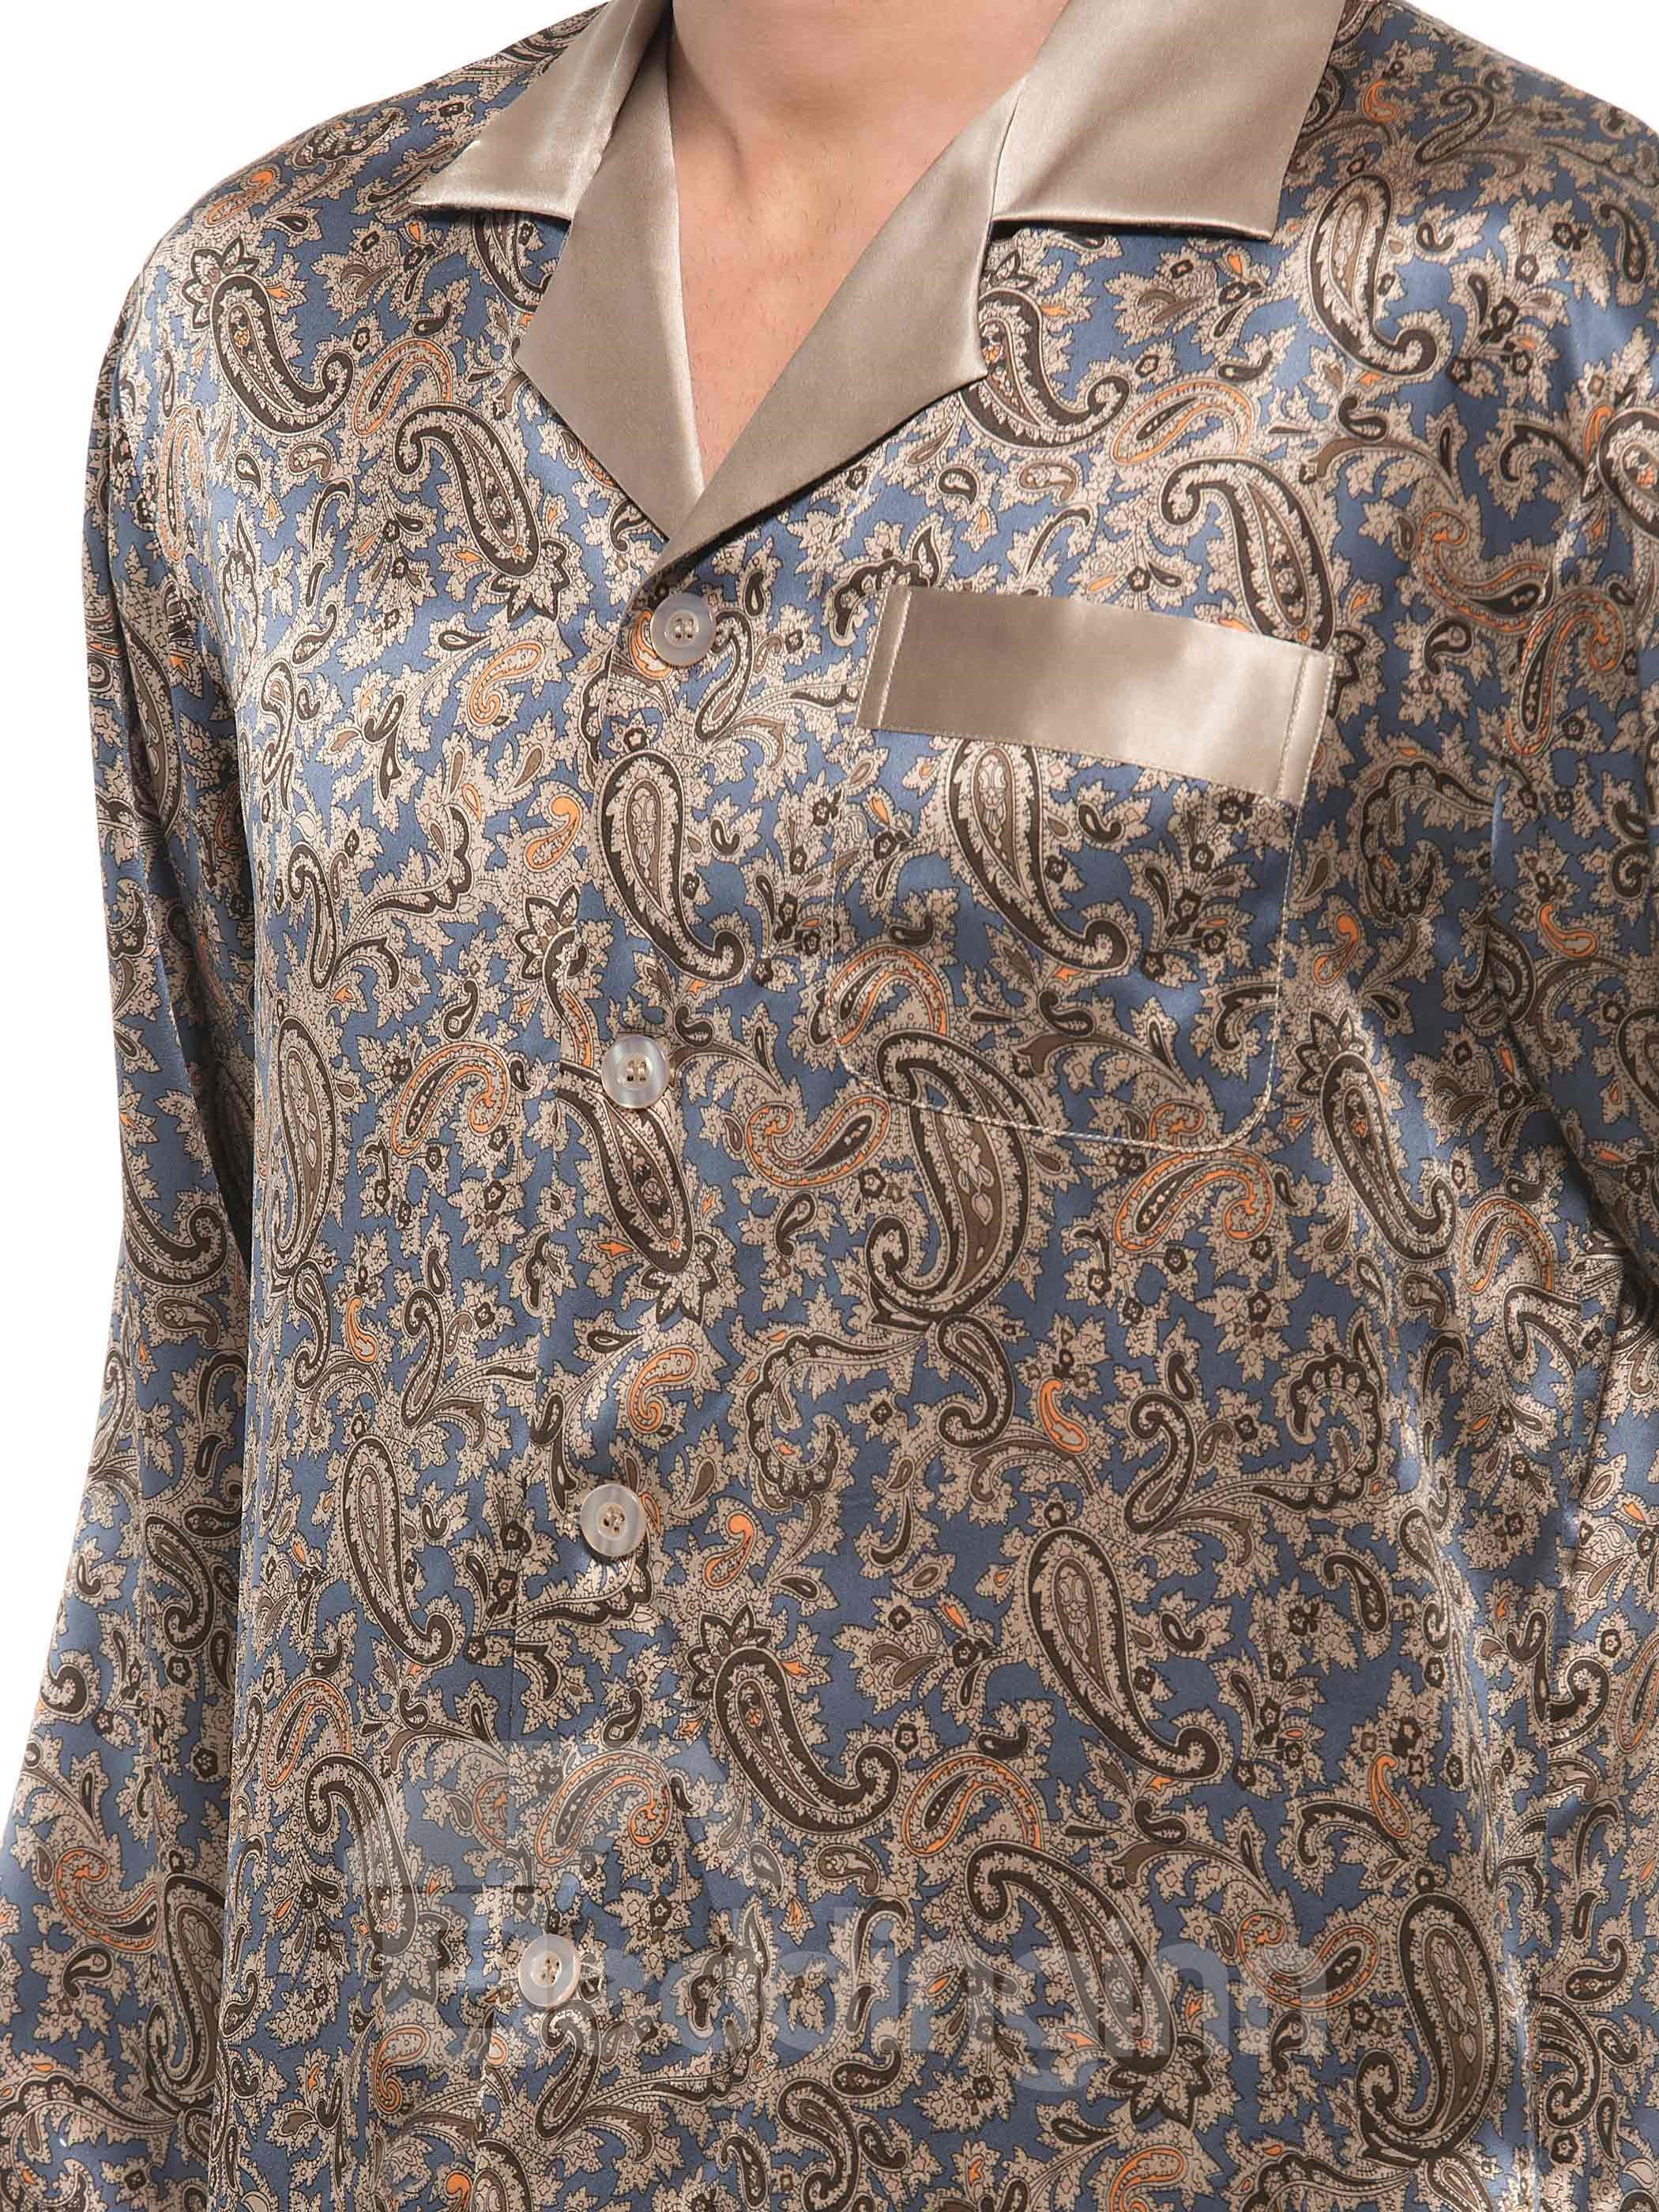 Classic Popular Notched Collar Banded Cuffs Floral Pattern Silk Pajamas